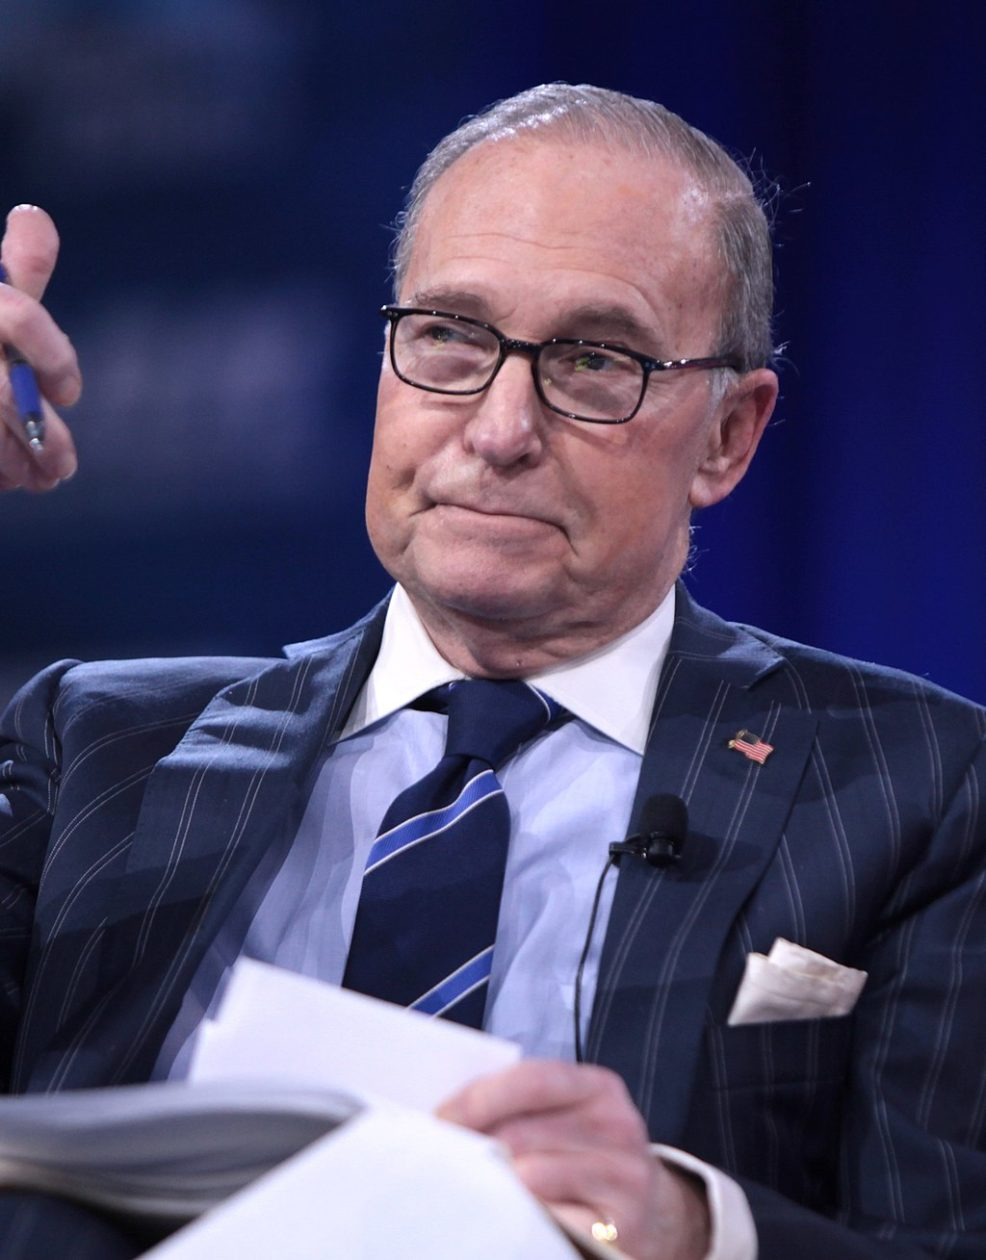 Trump's chief economic adviser didn't want to talk about Amazon's relationship with the Post Office